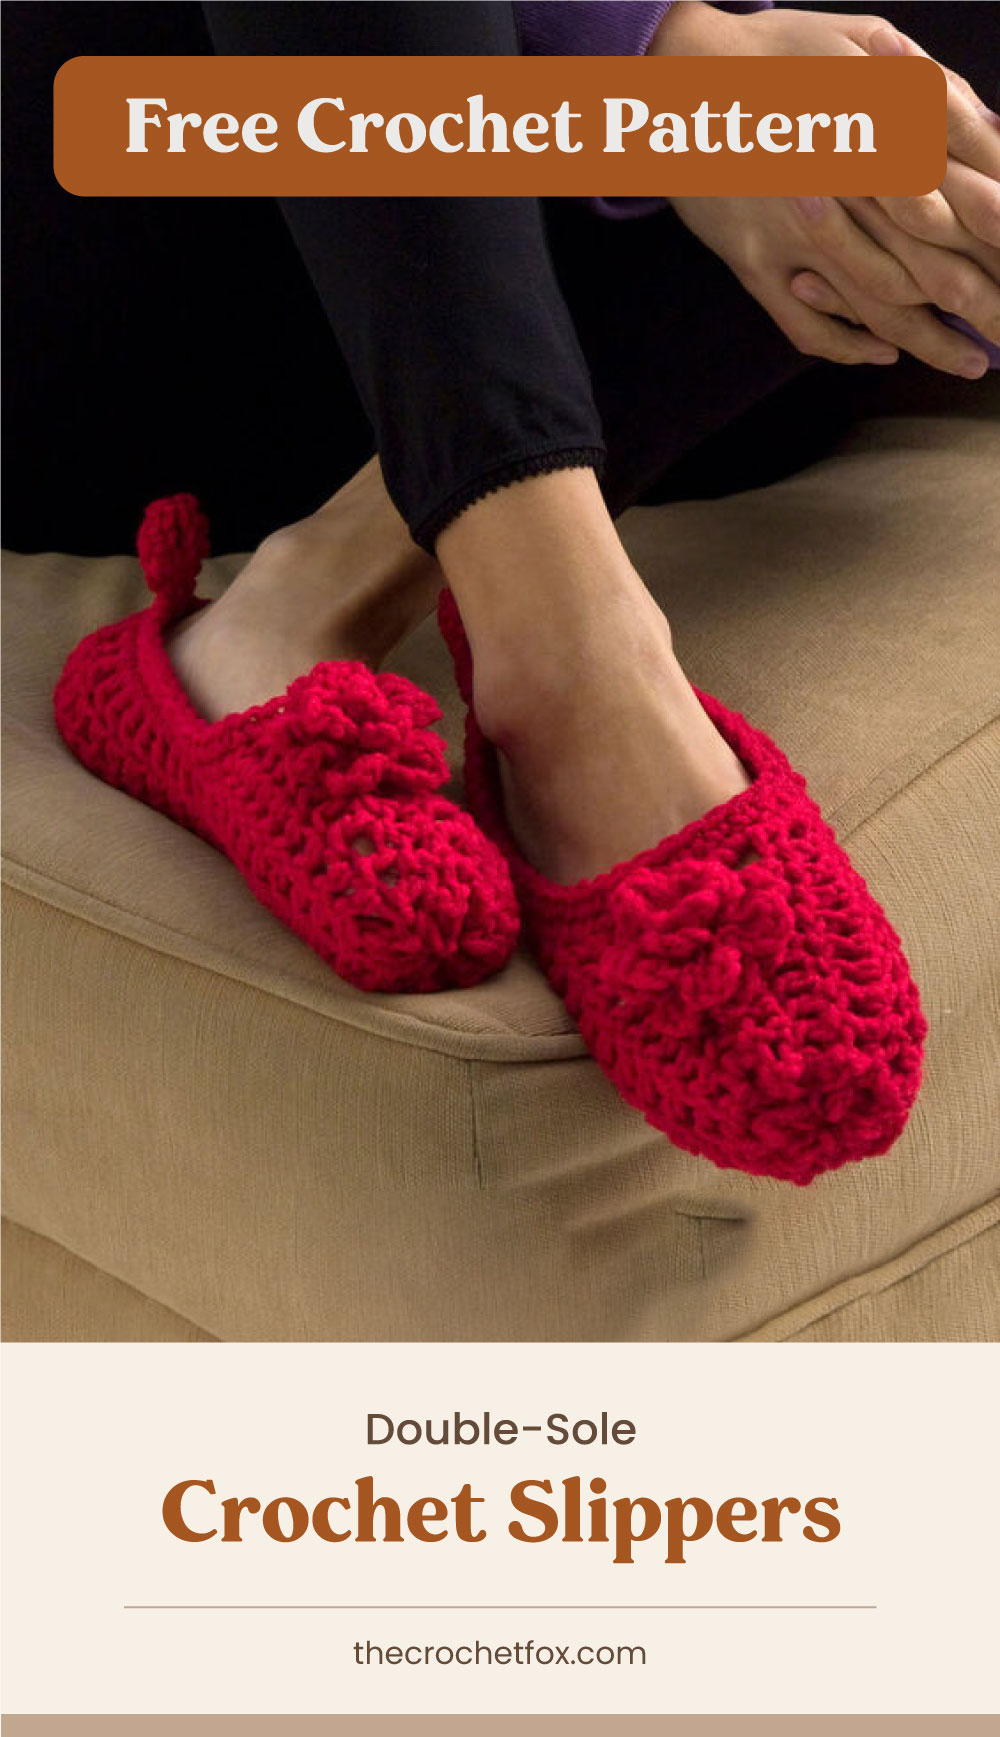 """Text area which says """"Free Crochet Pattern"""" next to a woman with her legs crossed while wearing a pair of red crocheted slippers followed by another text area which says """"Double-Sole Crochet Slippers, thecrochetfox.com"""""""